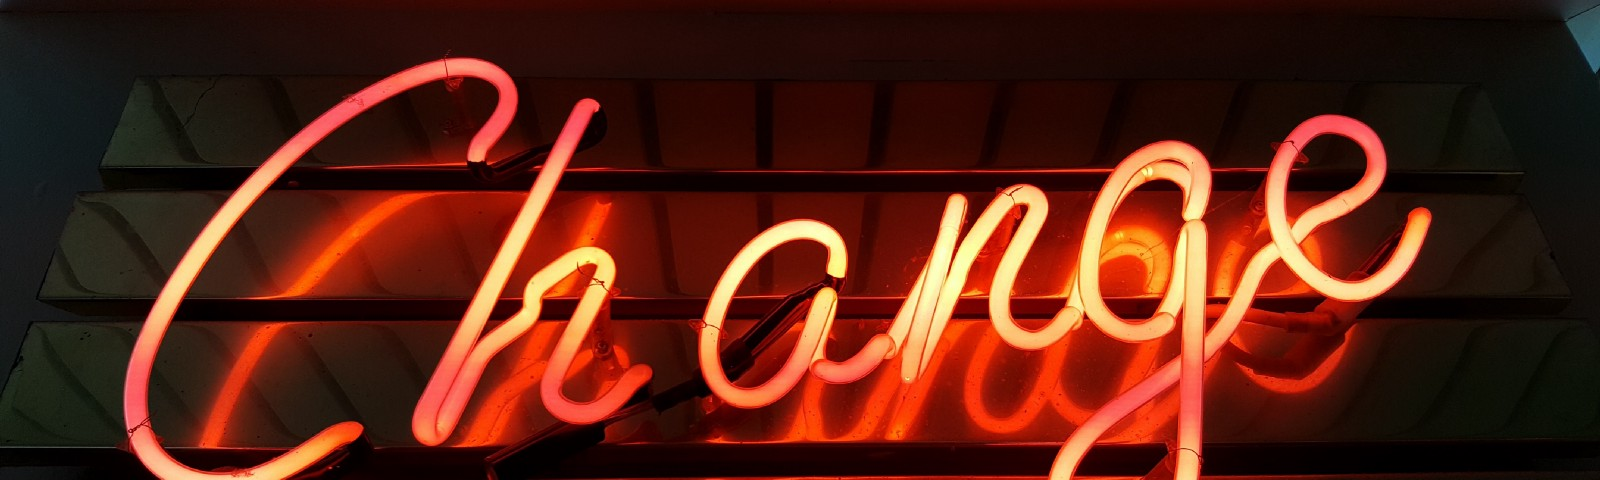 """Neon sign spelling out: """"Change"""""""